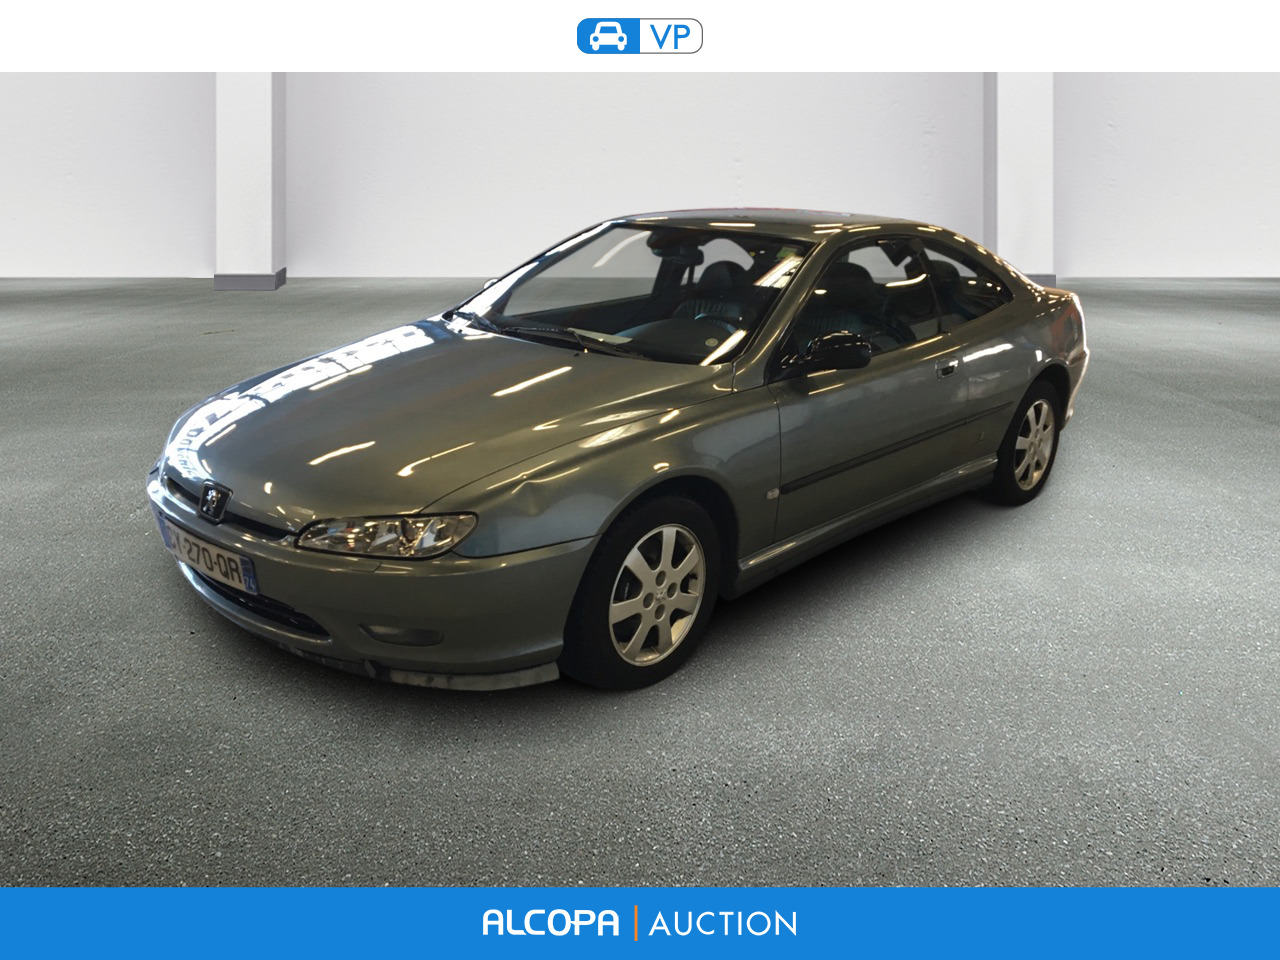 Coupe Peugeot Peugeot 406 Coupe 406 Coupe 2 2 Hdi Sport Alcopa Auction